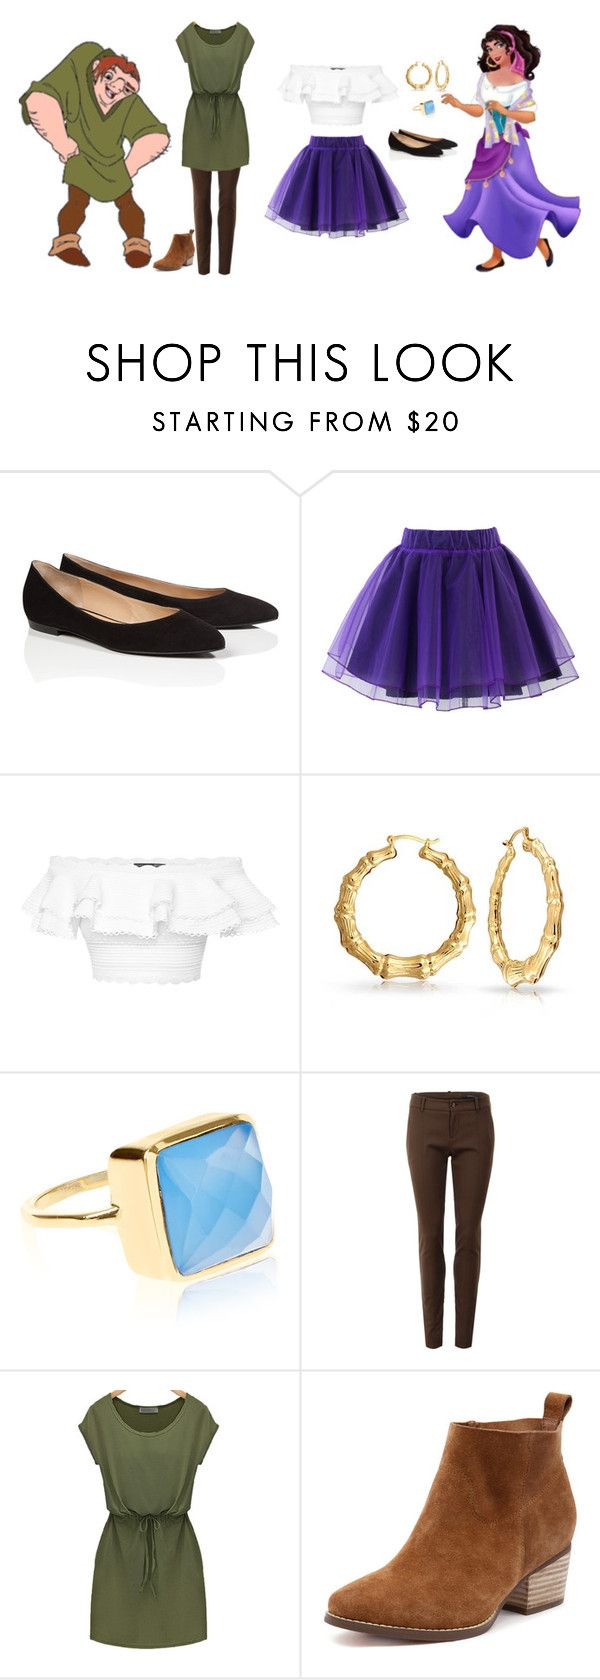 """""""Quasimodo & Esmeralda ~ Hunchback Of Notre Dame"""" by desireewolfe ❤ liked on Polyvore featuring ESCADA, Chicwish, Alexander McQueen, Bling Jewelry, Accessorize and Gucci"""